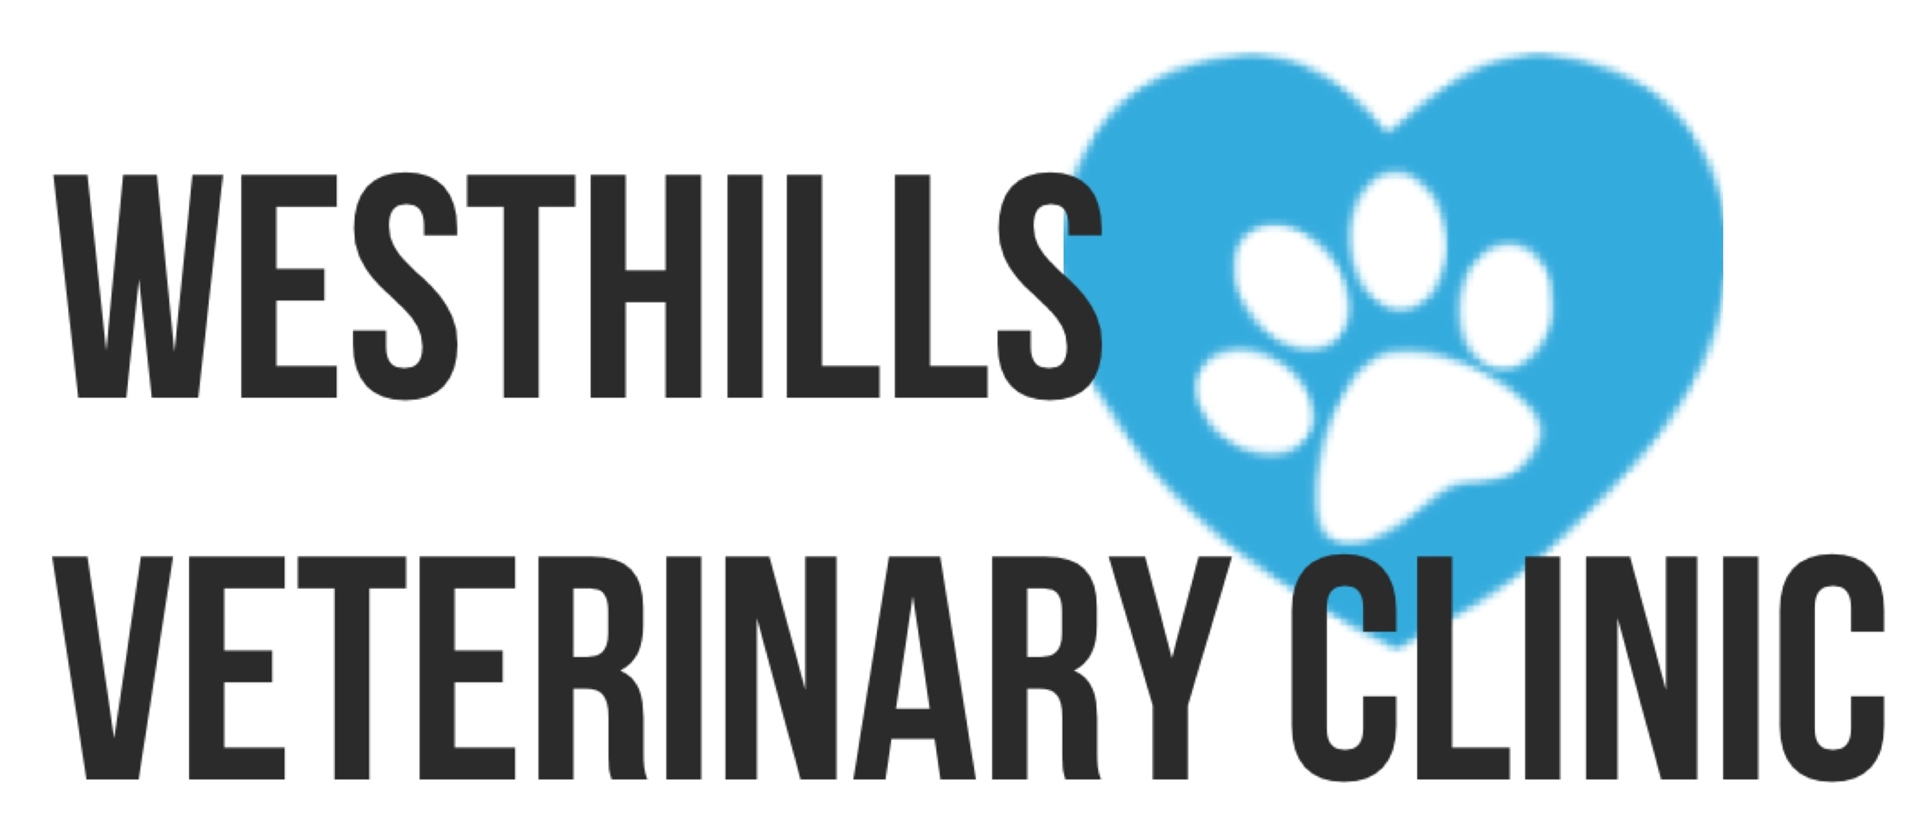 Westhills Veterinary Clinic Online Store